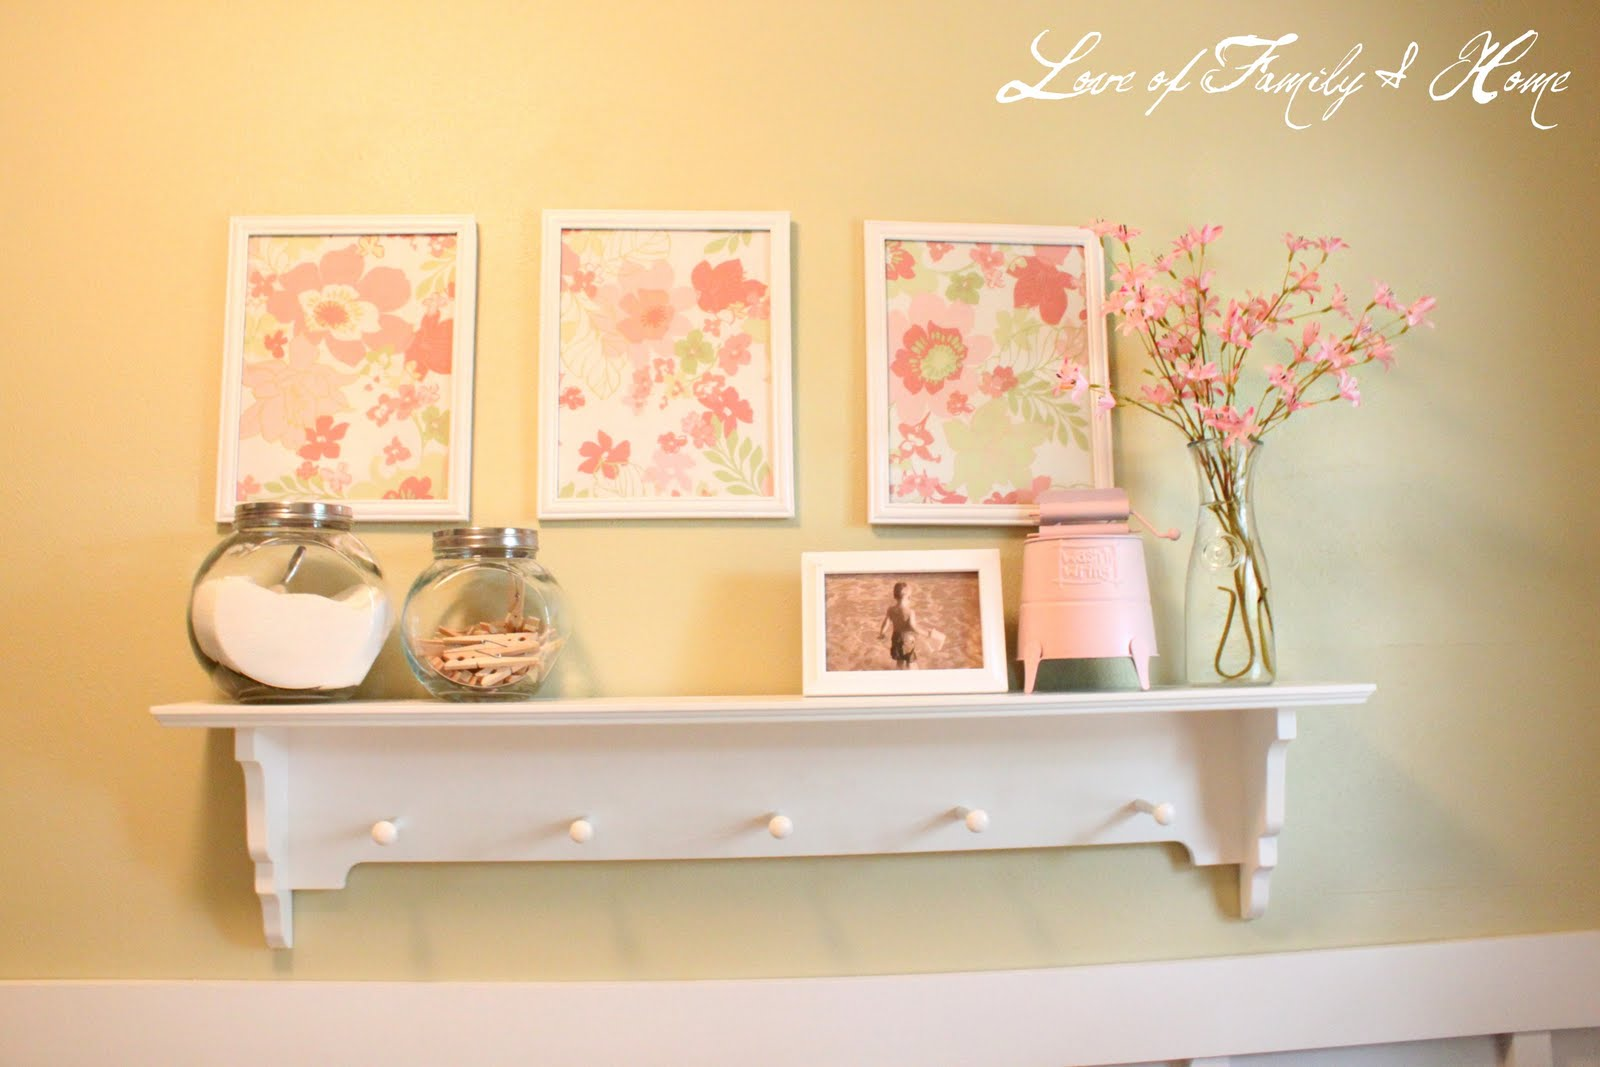 Love Of Family & Home: DIY Cheap Wall Art...